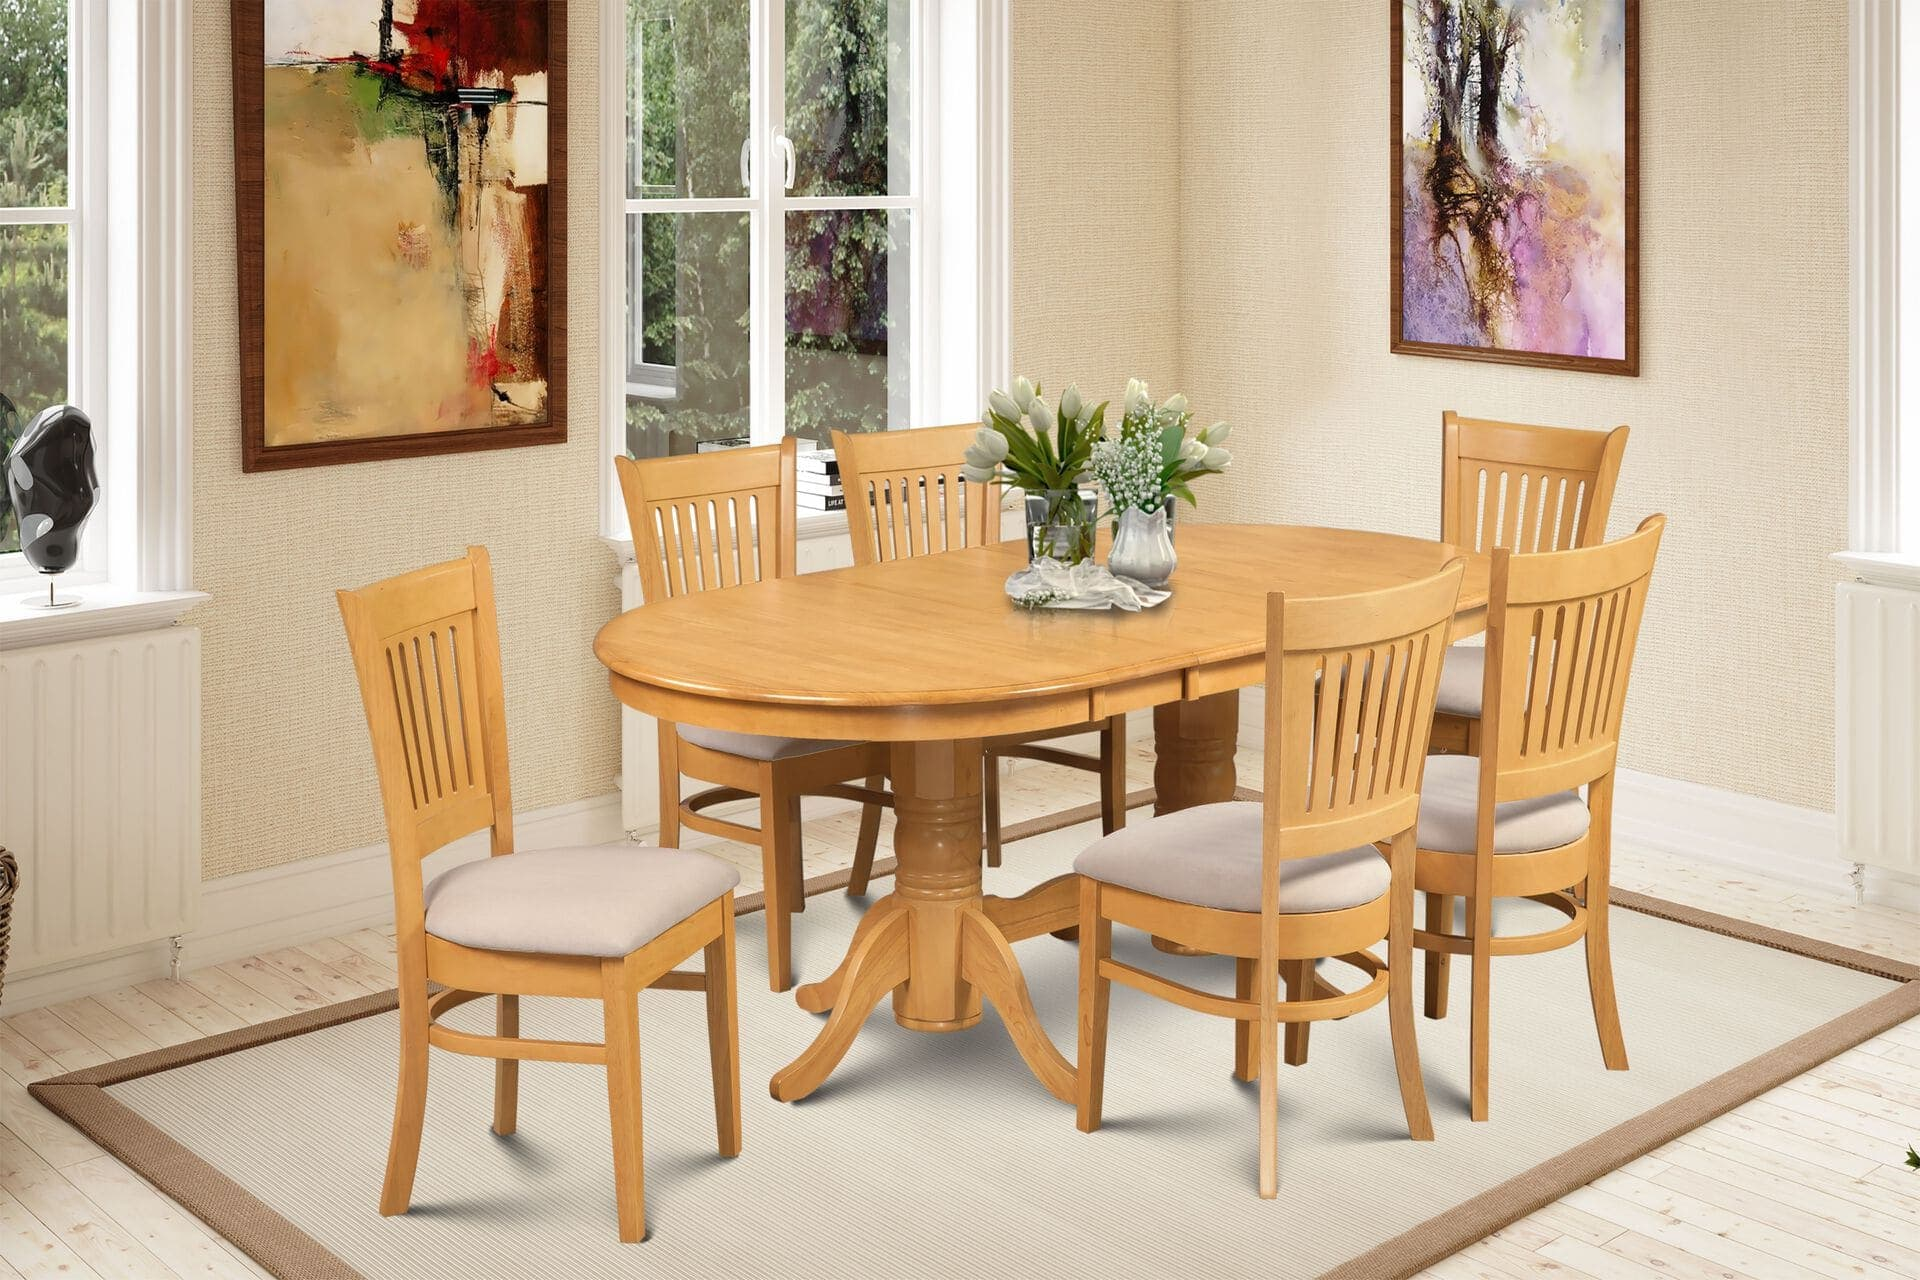 Delano Set Of 7 Bellingham Upholstered Seat Dining Chair